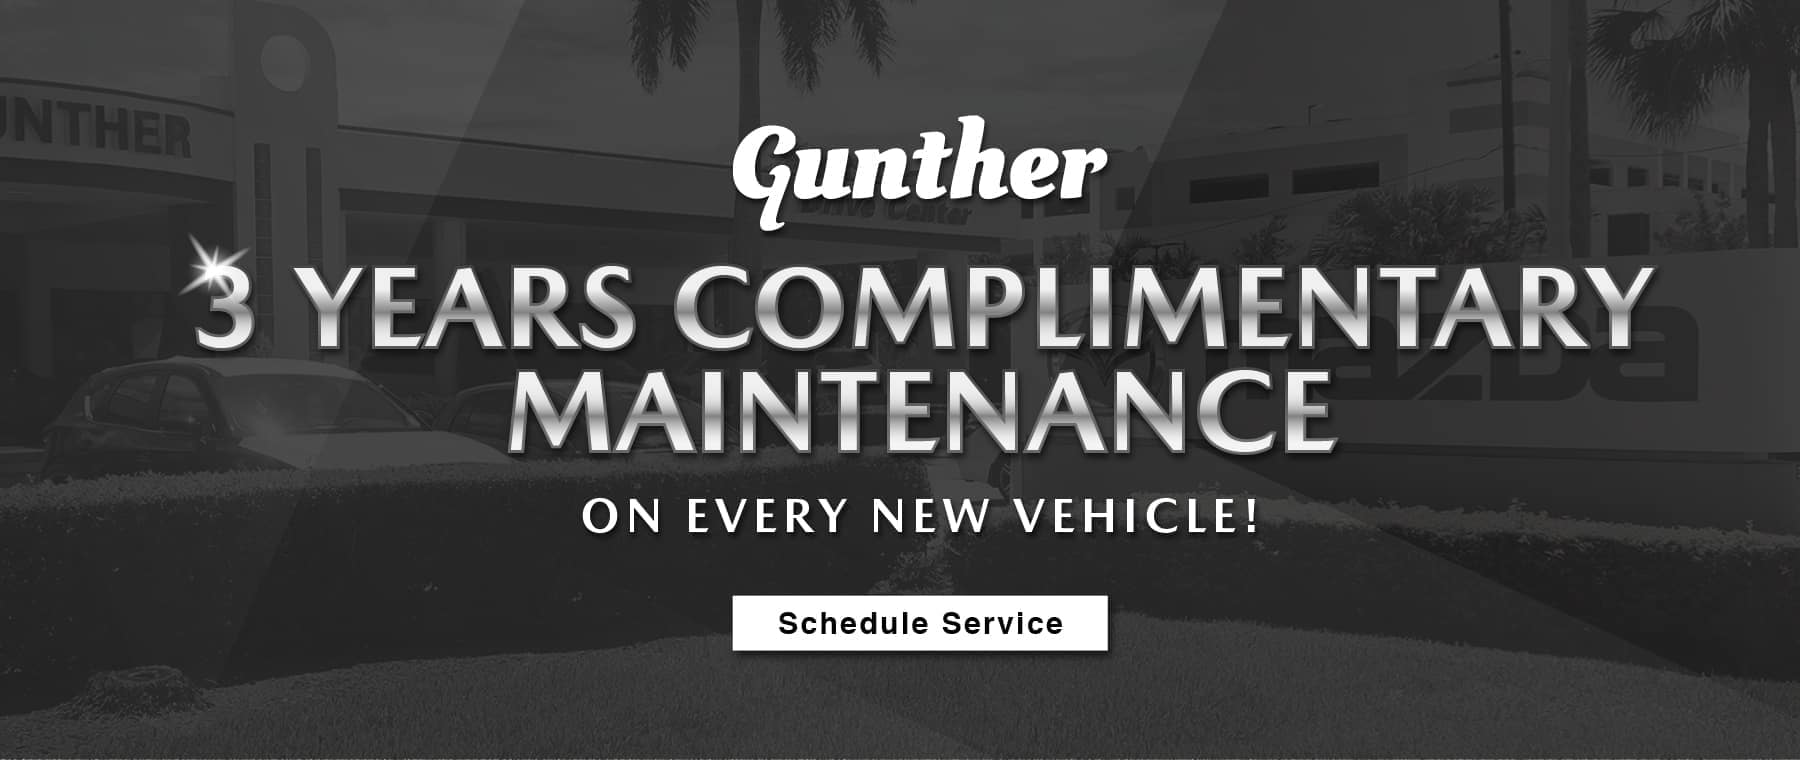 Gunther 3 Years Free Maintenance on every new vehicle. Schedule Service